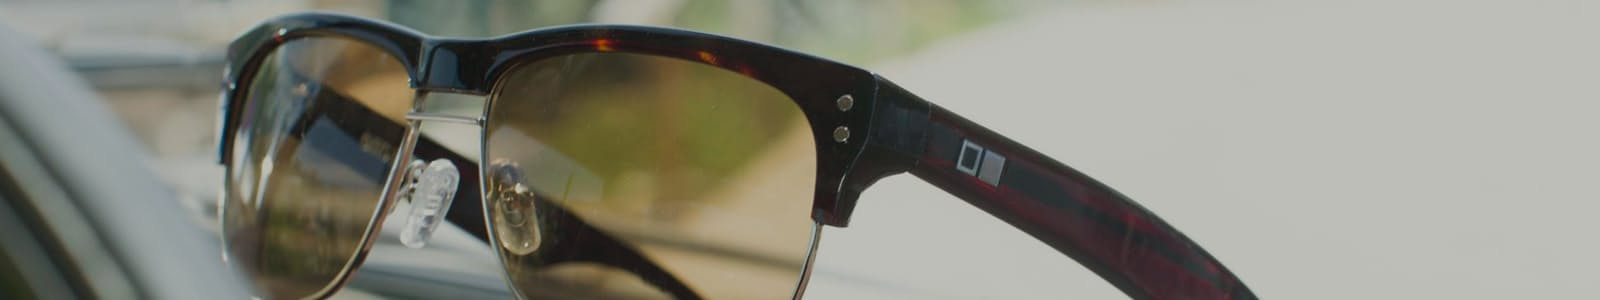 Otis eyewear header.jpg?ixlib=rails 2.1